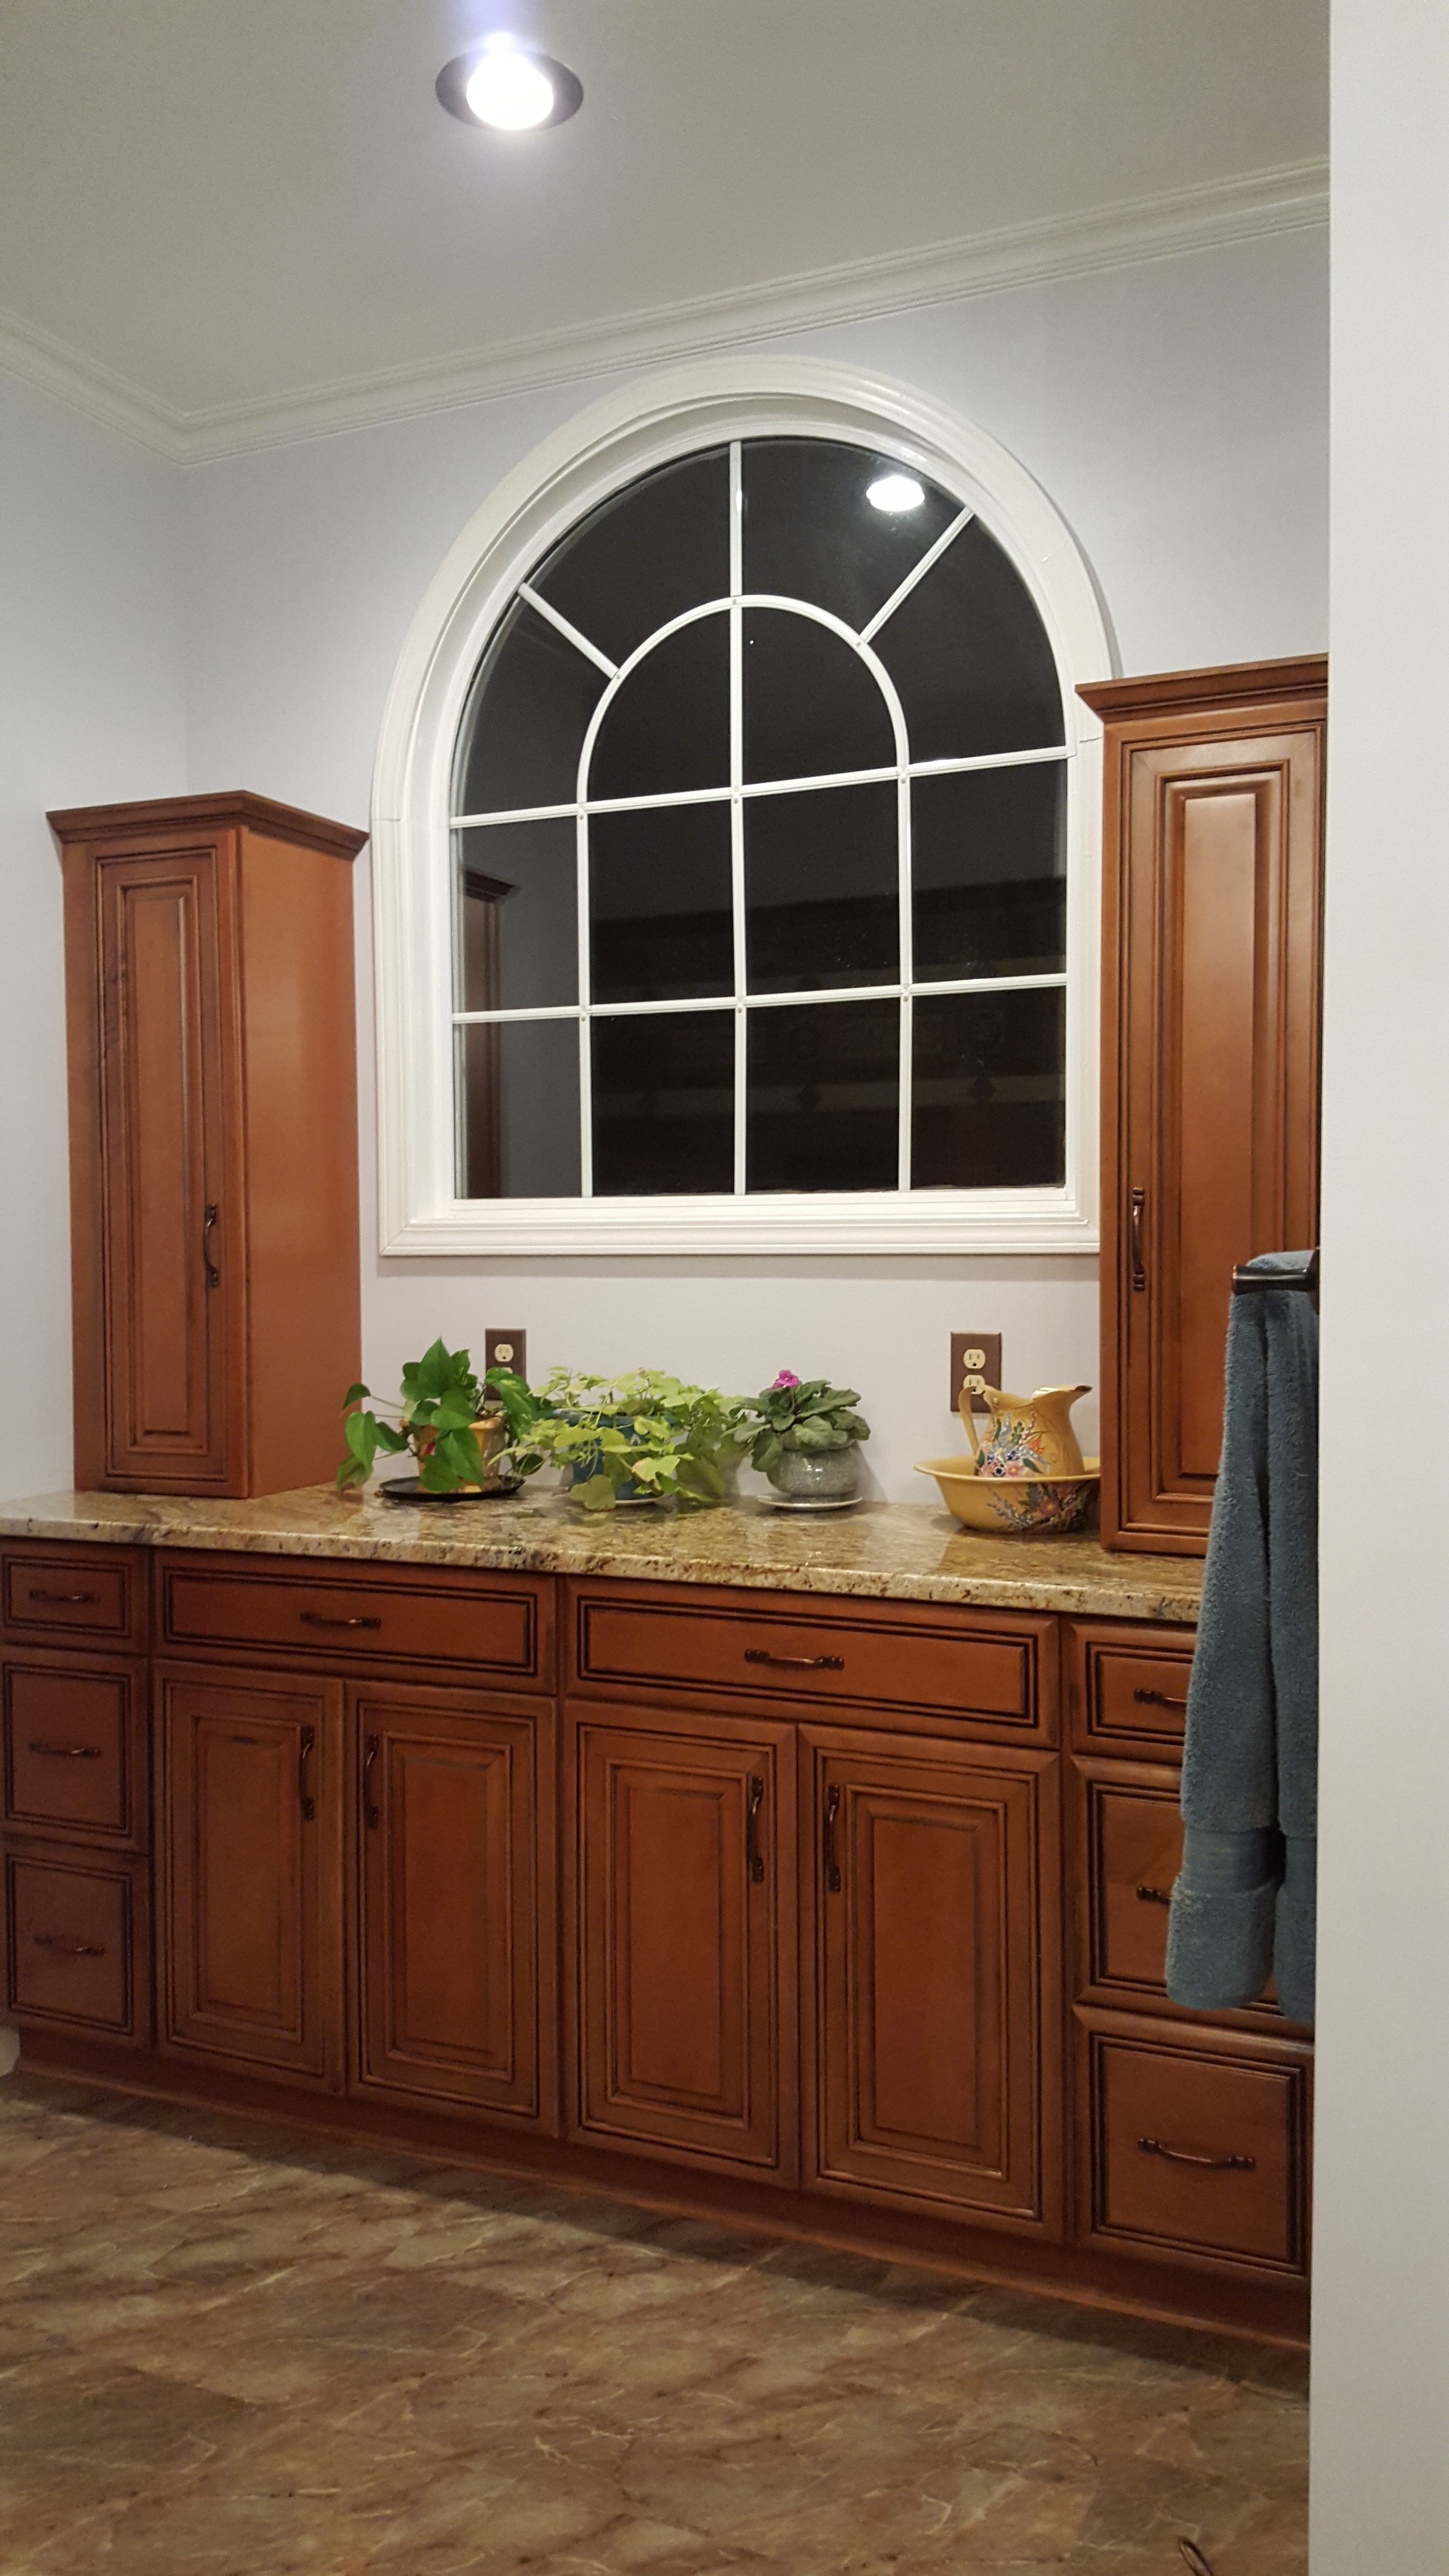 Diamond Whiskey Black Maple cabinets (Lowe's)...Yellow ... on Black Granite Countertops With Maple Cabinets  id=67724